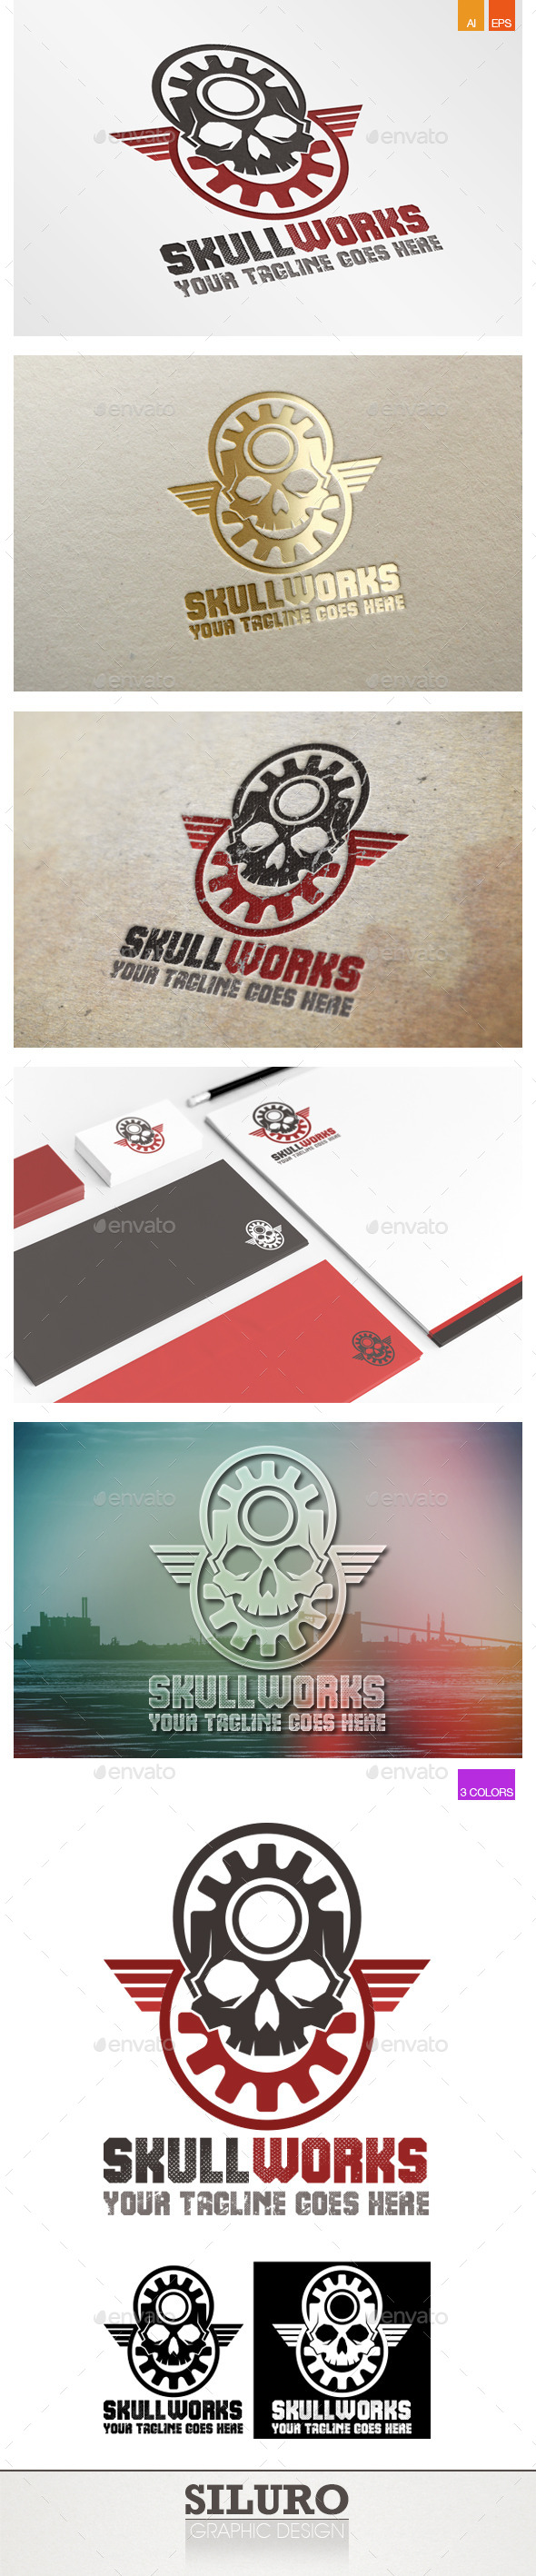 Skull Works Logo - Objects Logo Templates